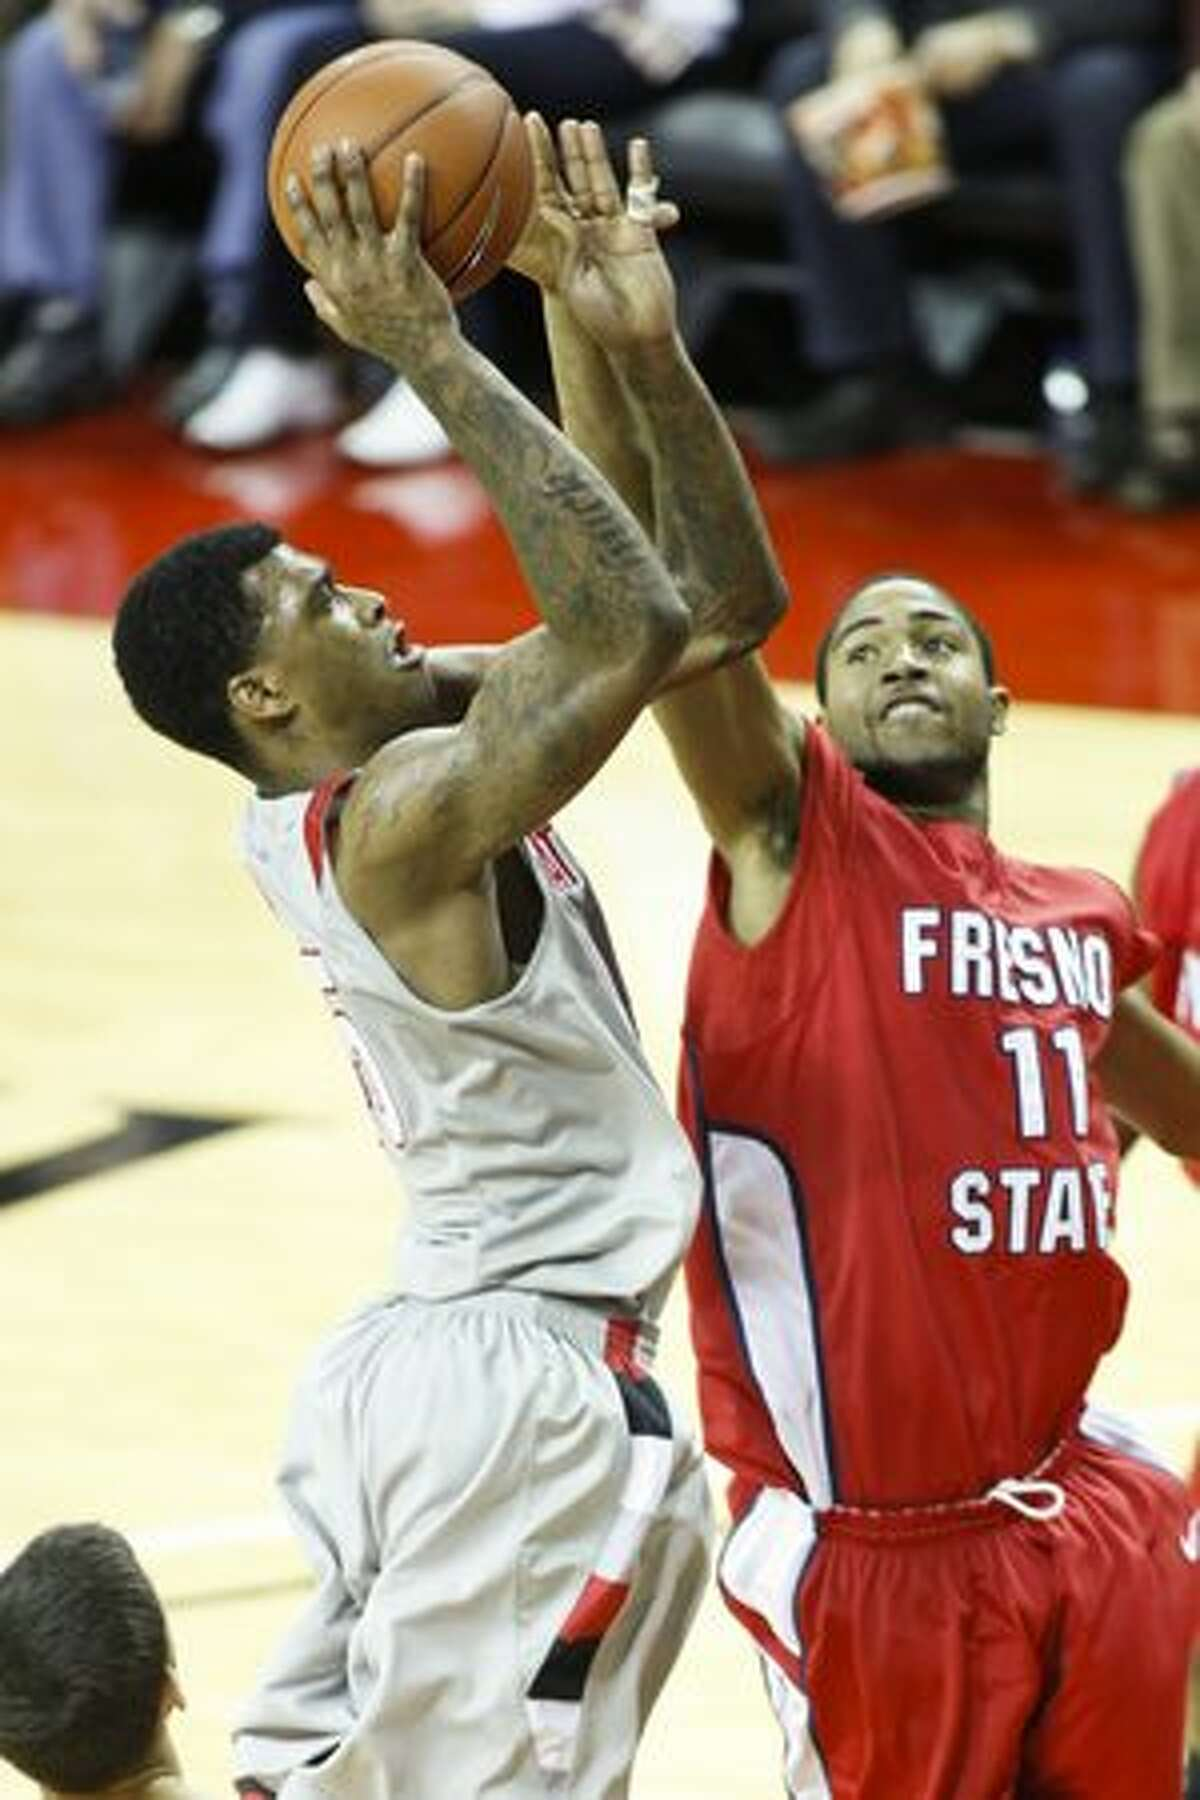 Charles Garcia shoots against Fresno State's Jerry Brown III.